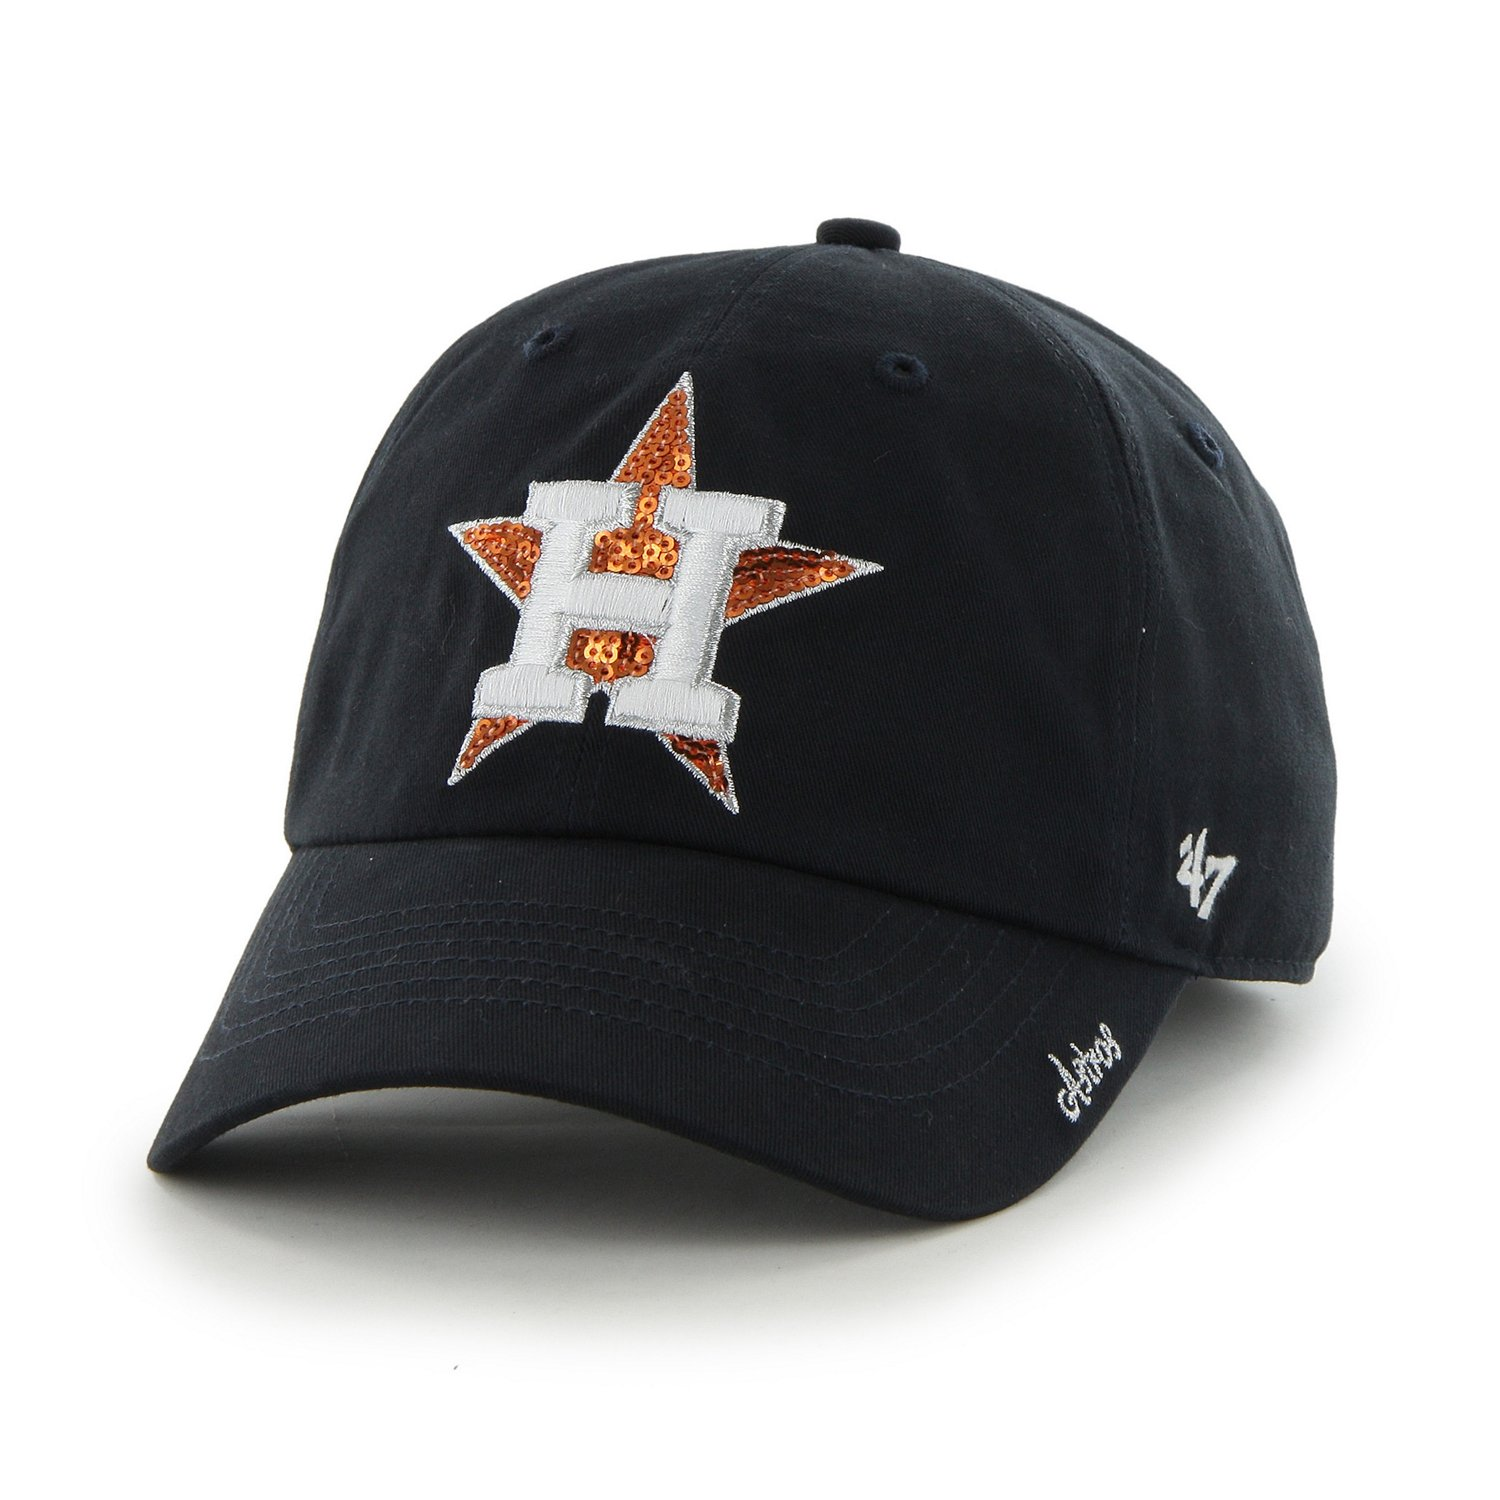 3abdc36e37f6c Display product reviews for  47 Women s Houston Astros Sparkle Team Color  Cleanup Cap